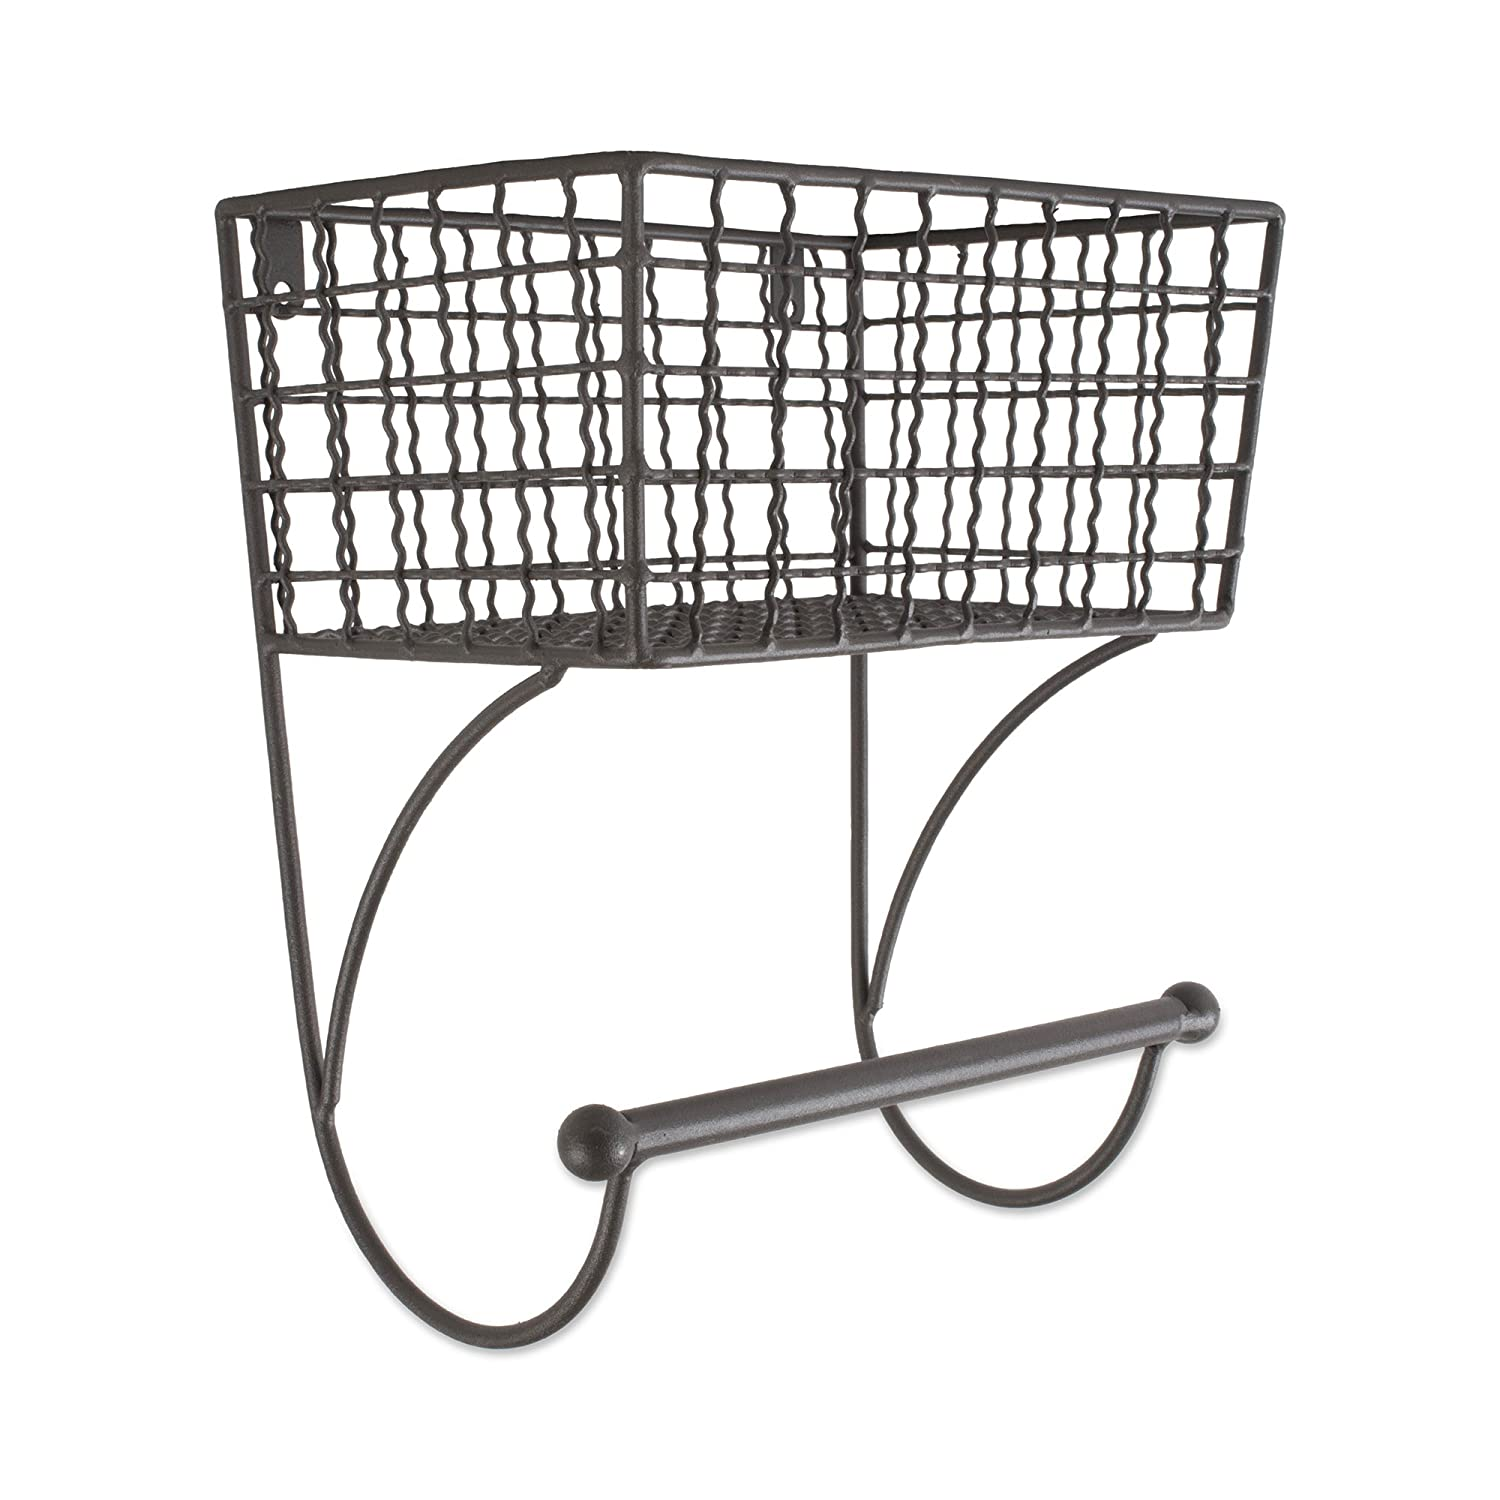 DII Home Traditions Rustic Metal Wall Mount Shelf Towel Bar, Small-Gray Z02226